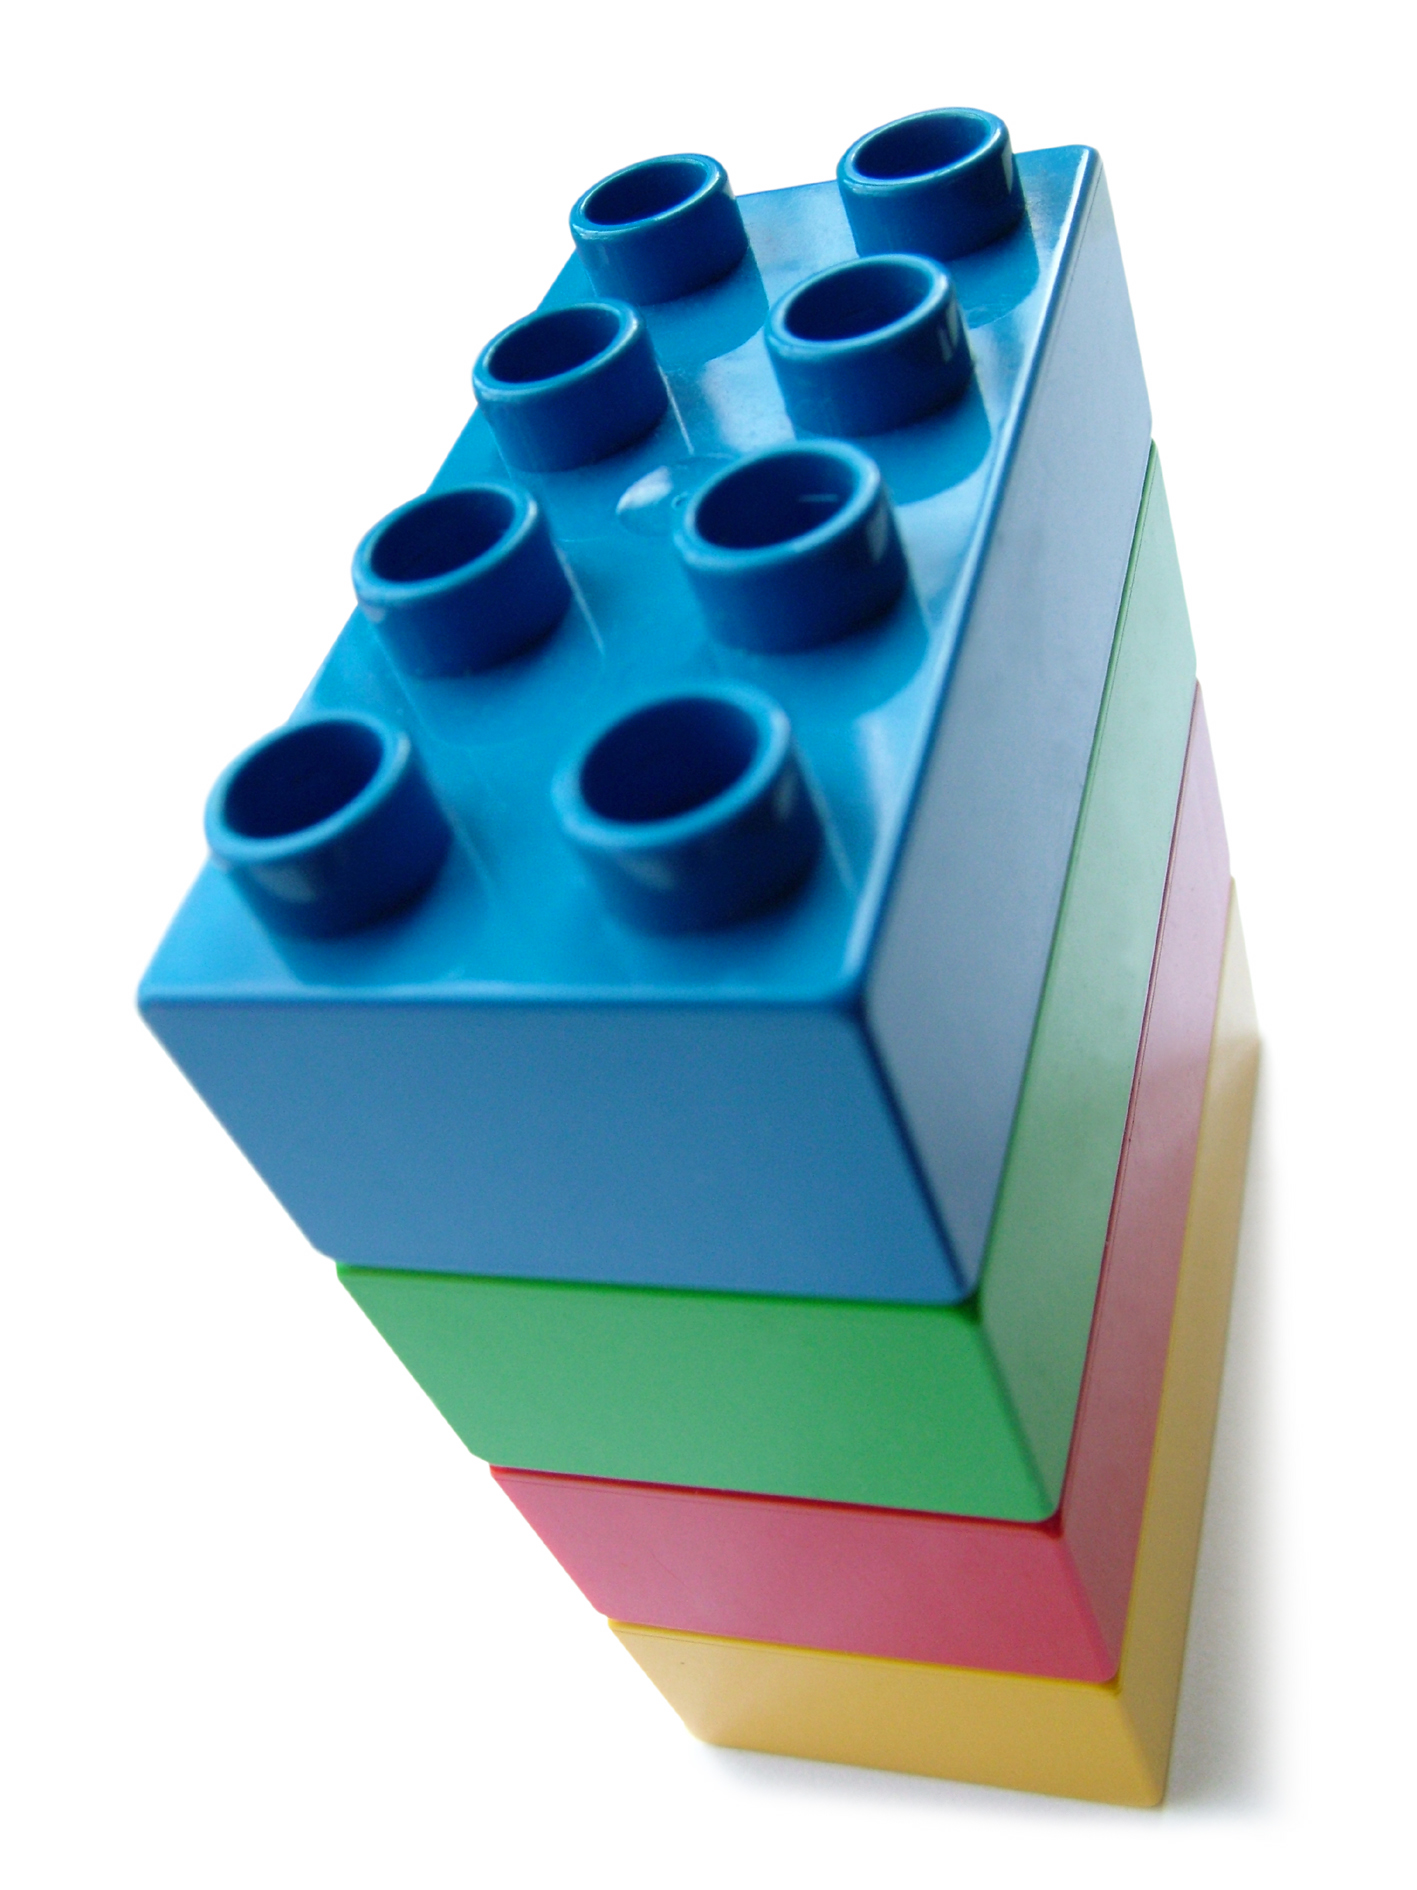 Lego clipart stack Simply of Stackable Credits: Florida